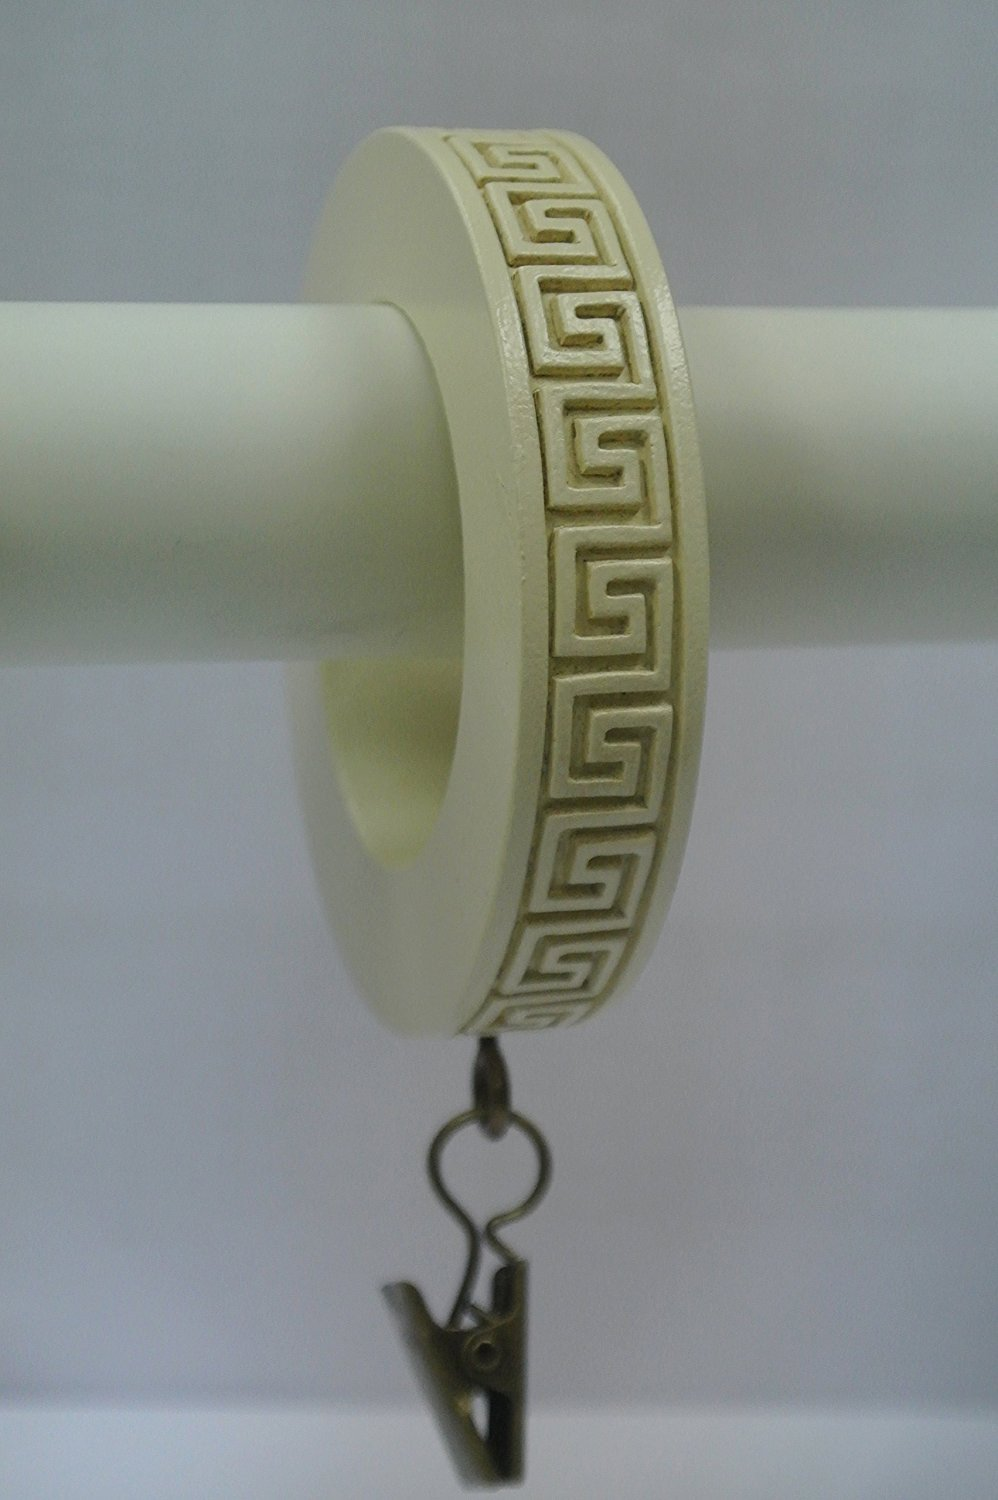 Set of 7 Greek Key Designer Curtain Rings in Ivory